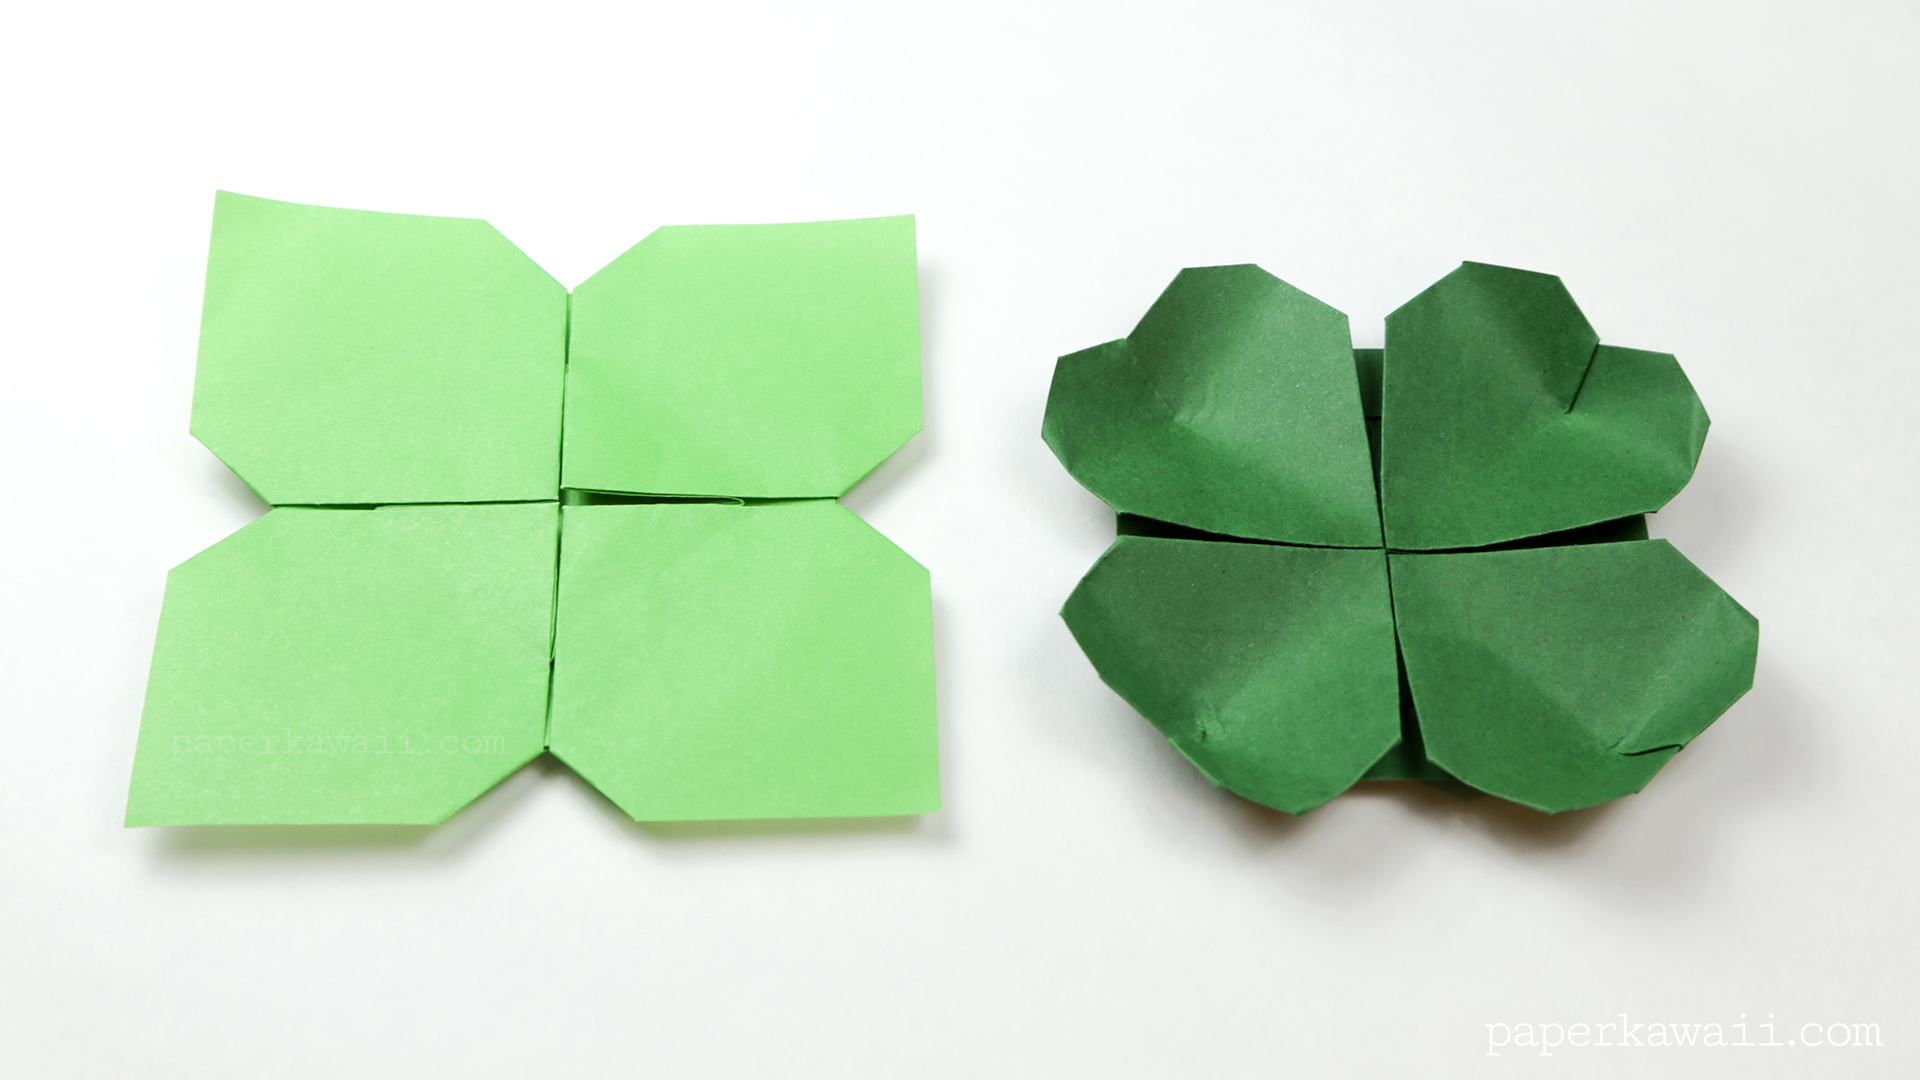 Origami clover flower instructions paper kawaii - Origami origami origami ...